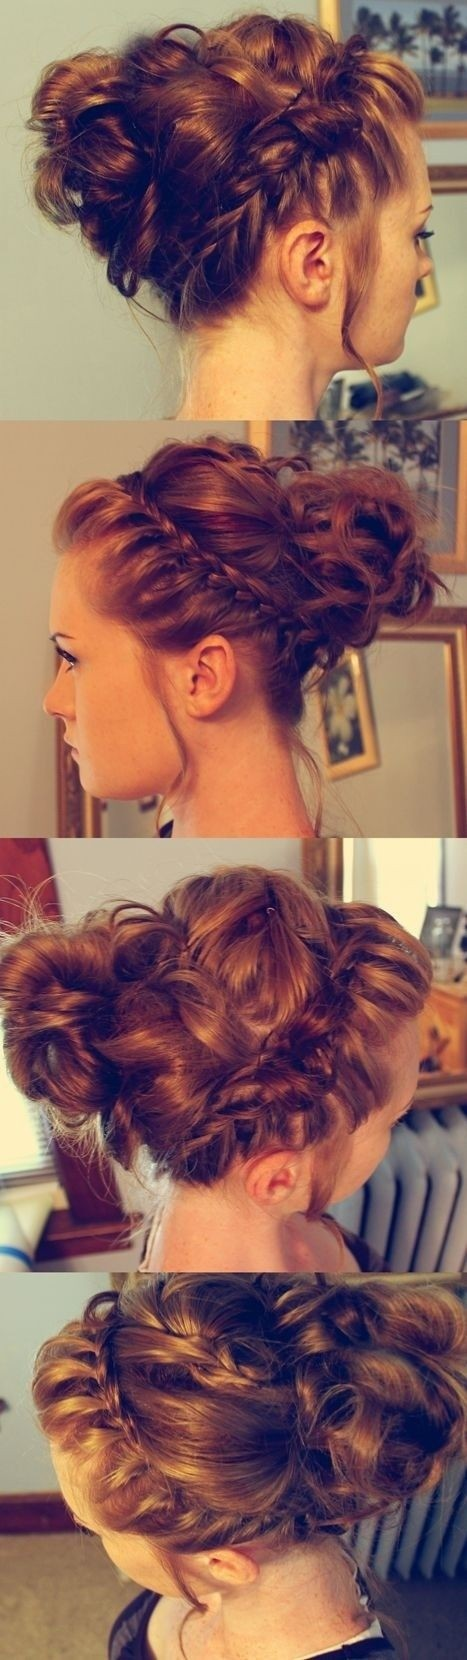 Pleasing 8 Fantastic New Dance Hairstyles Long Hair Styles For Prom Short Hairstyles Gunalazisus